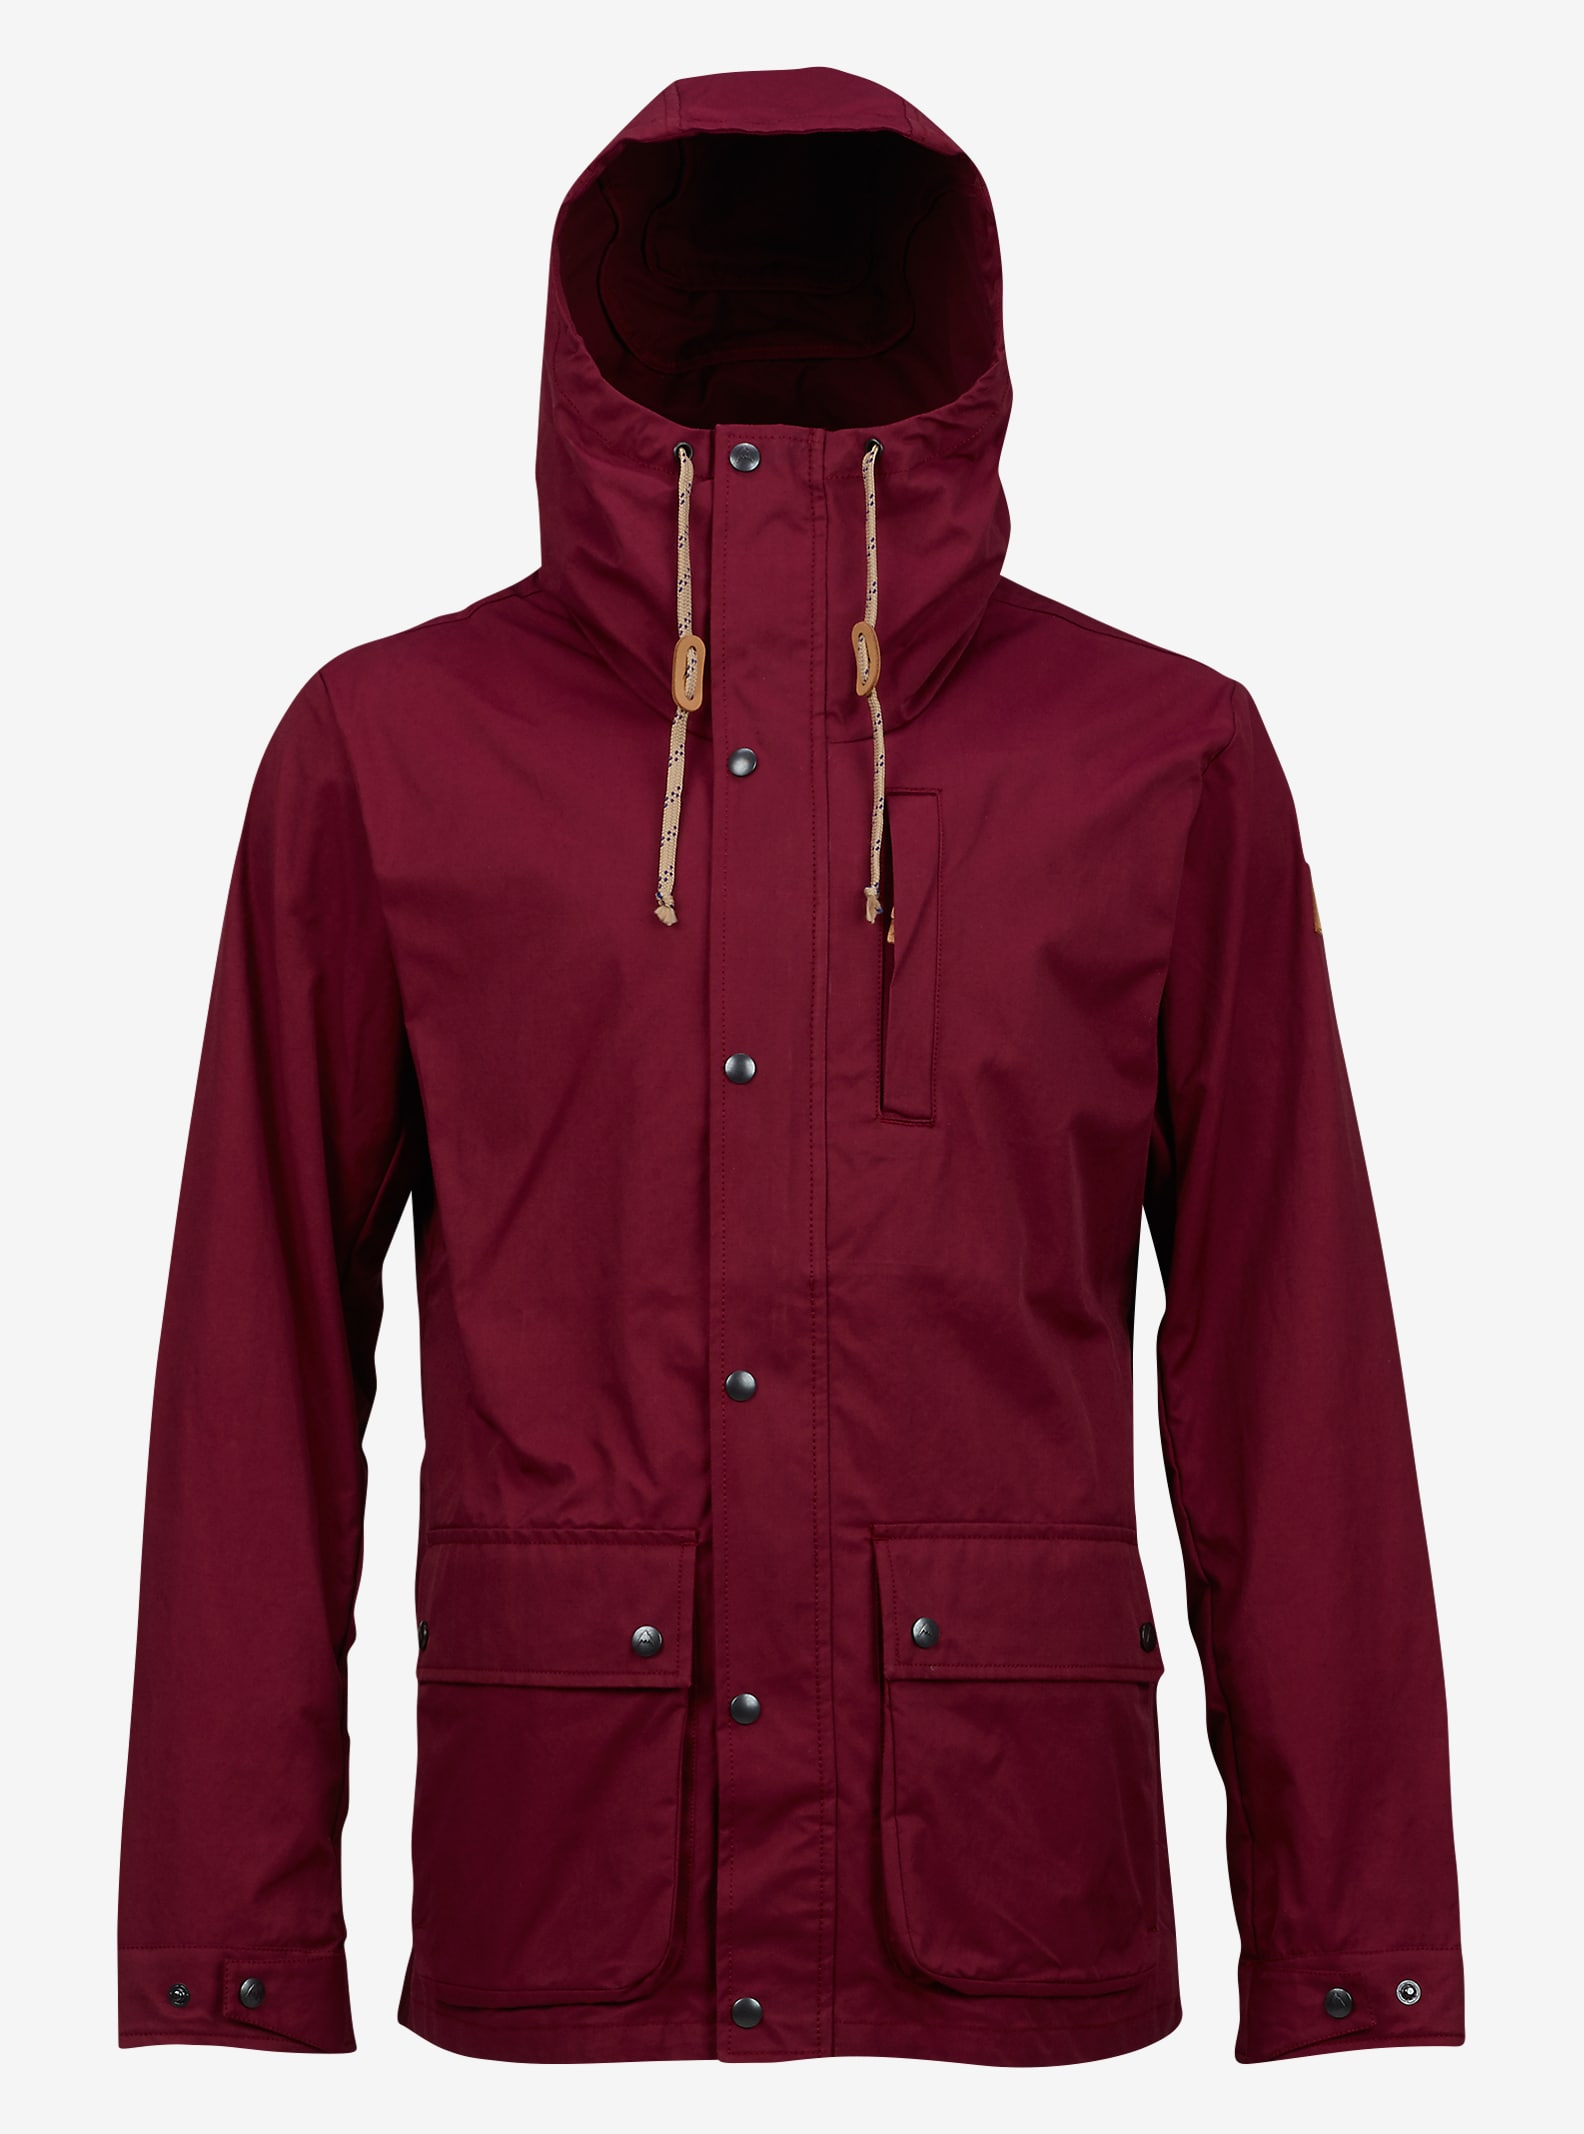 Burton Boroughs Parka shown in Wino